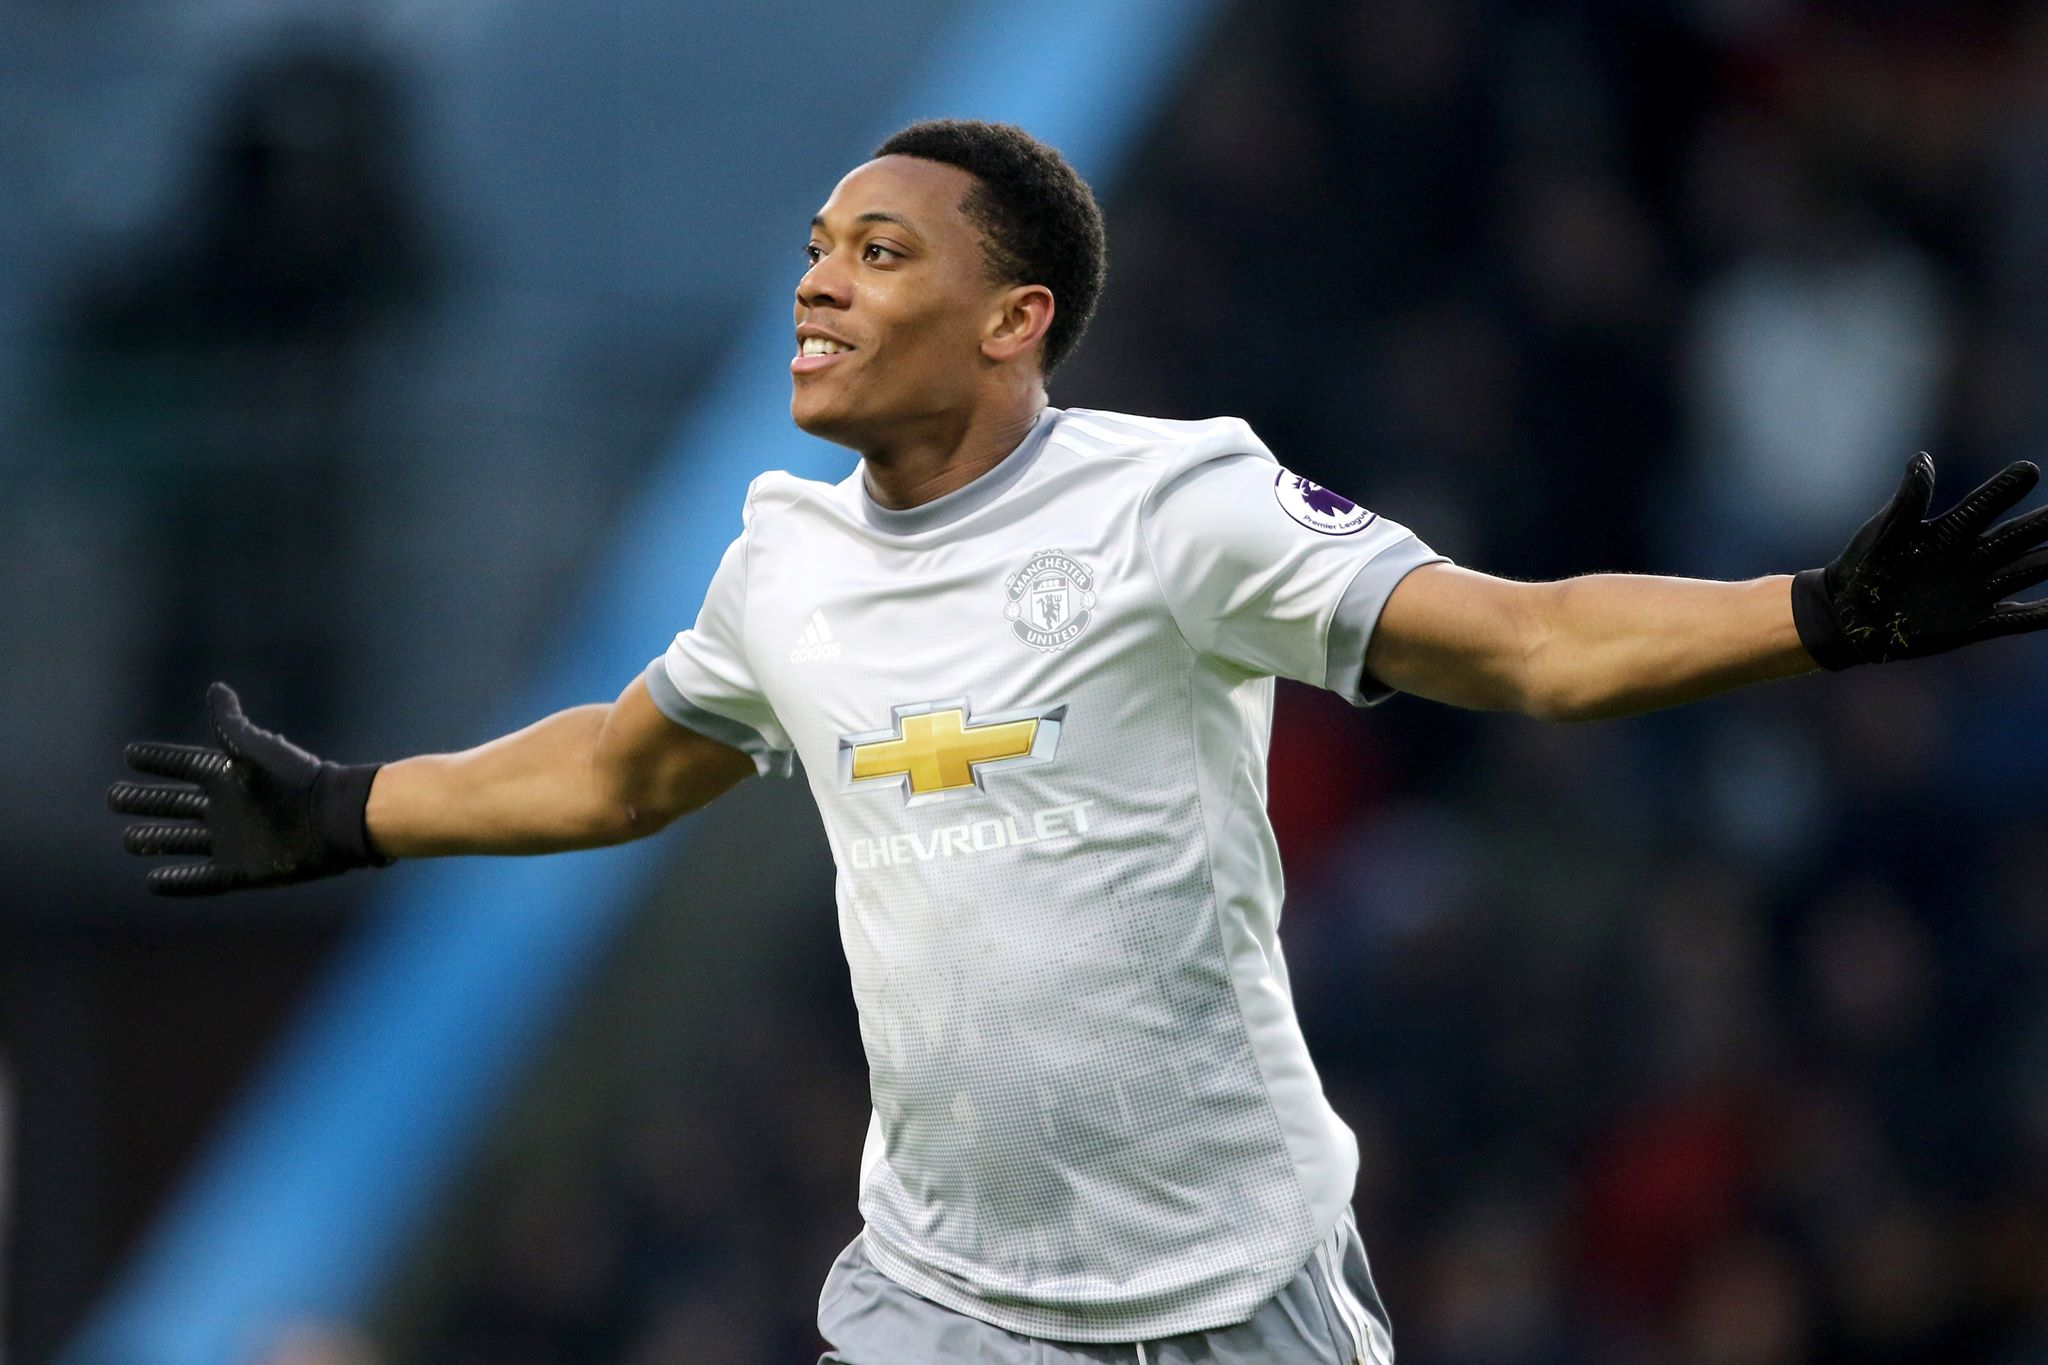 Martial celebrates scoring a goal for United. Image PA